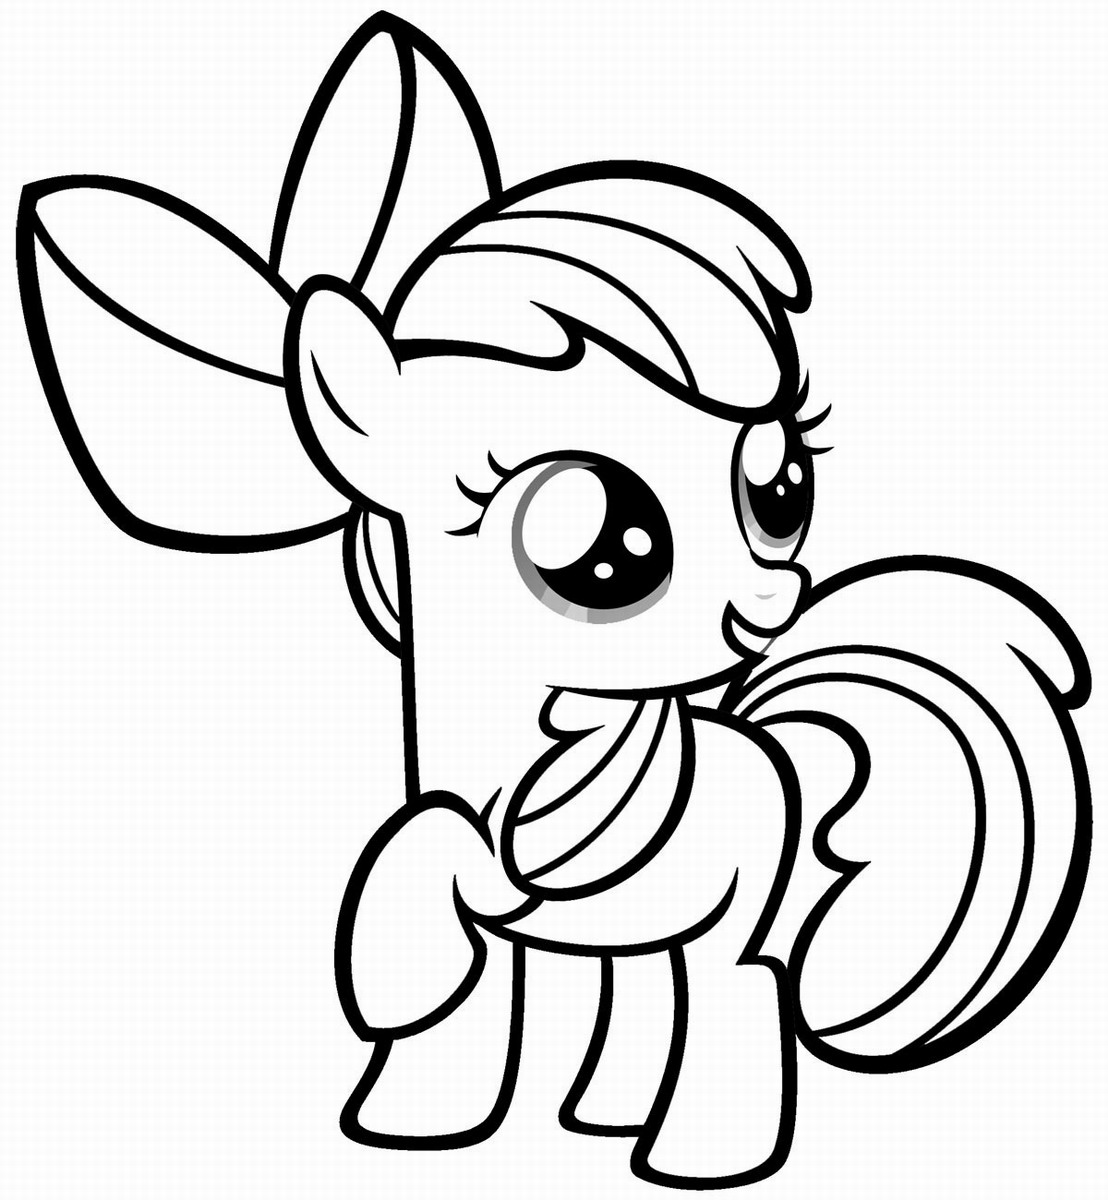 my little pony coloring images my little pony coloring pages print and colorcom pony my little images coloring